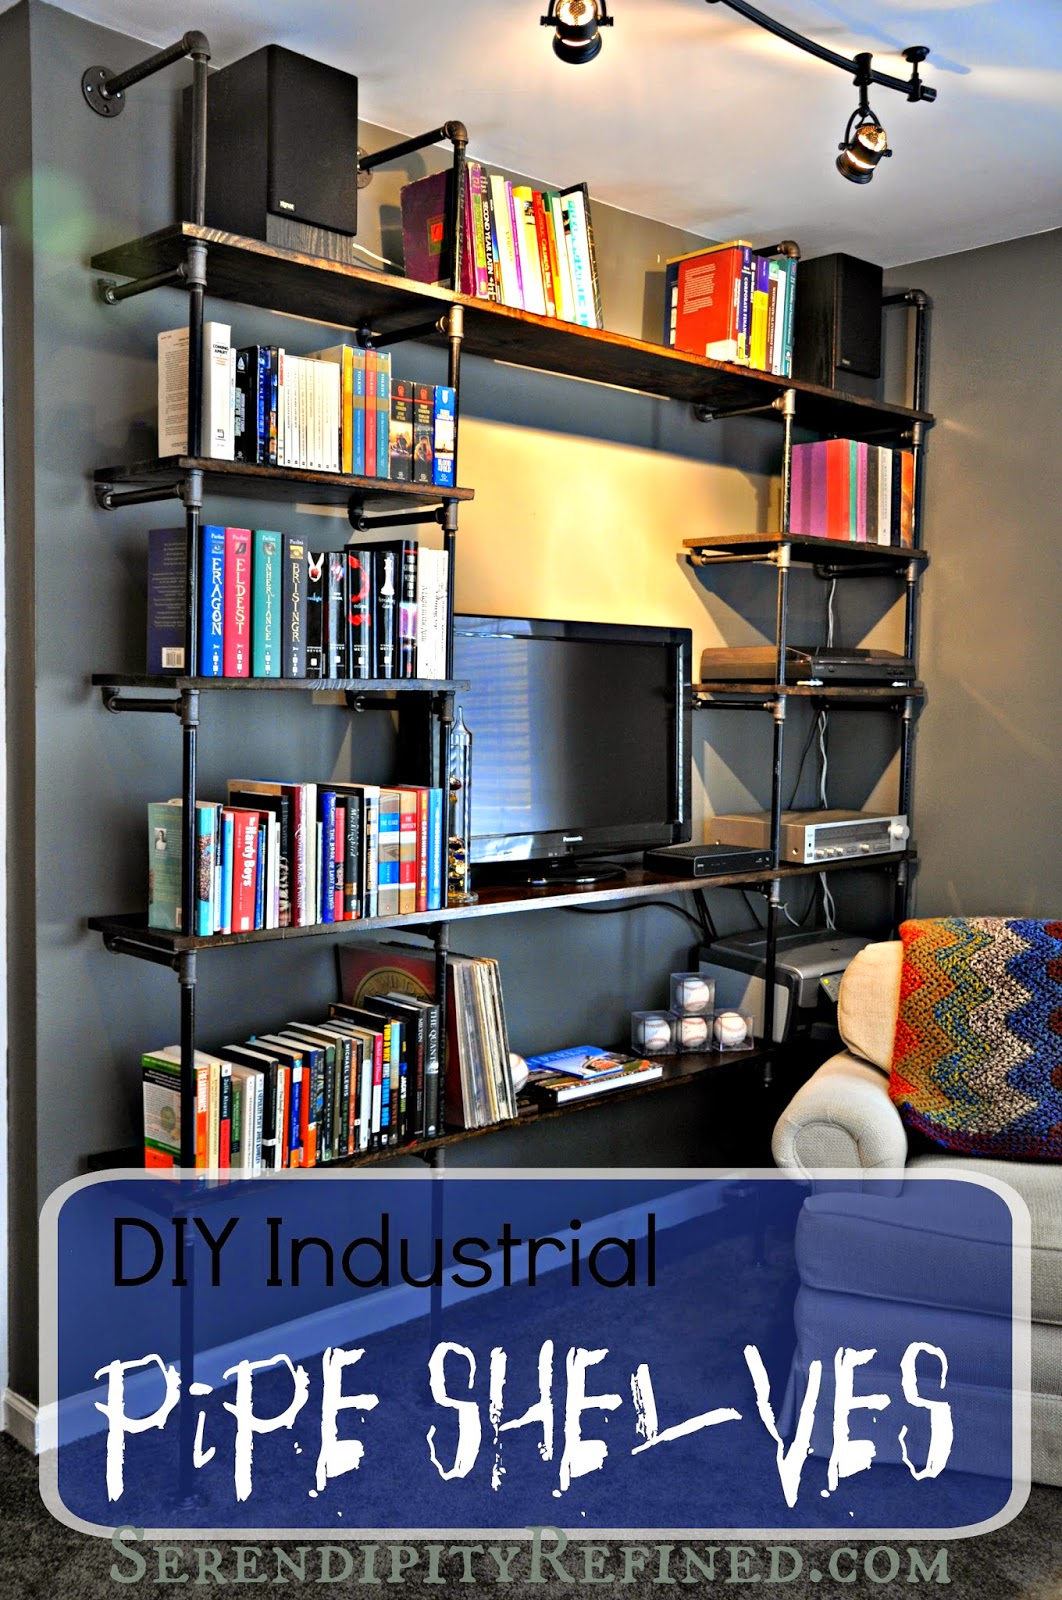 last weekend we finished the last of the projects at my sonu0027s apartment we built industrial pipe shelves for his living room wall